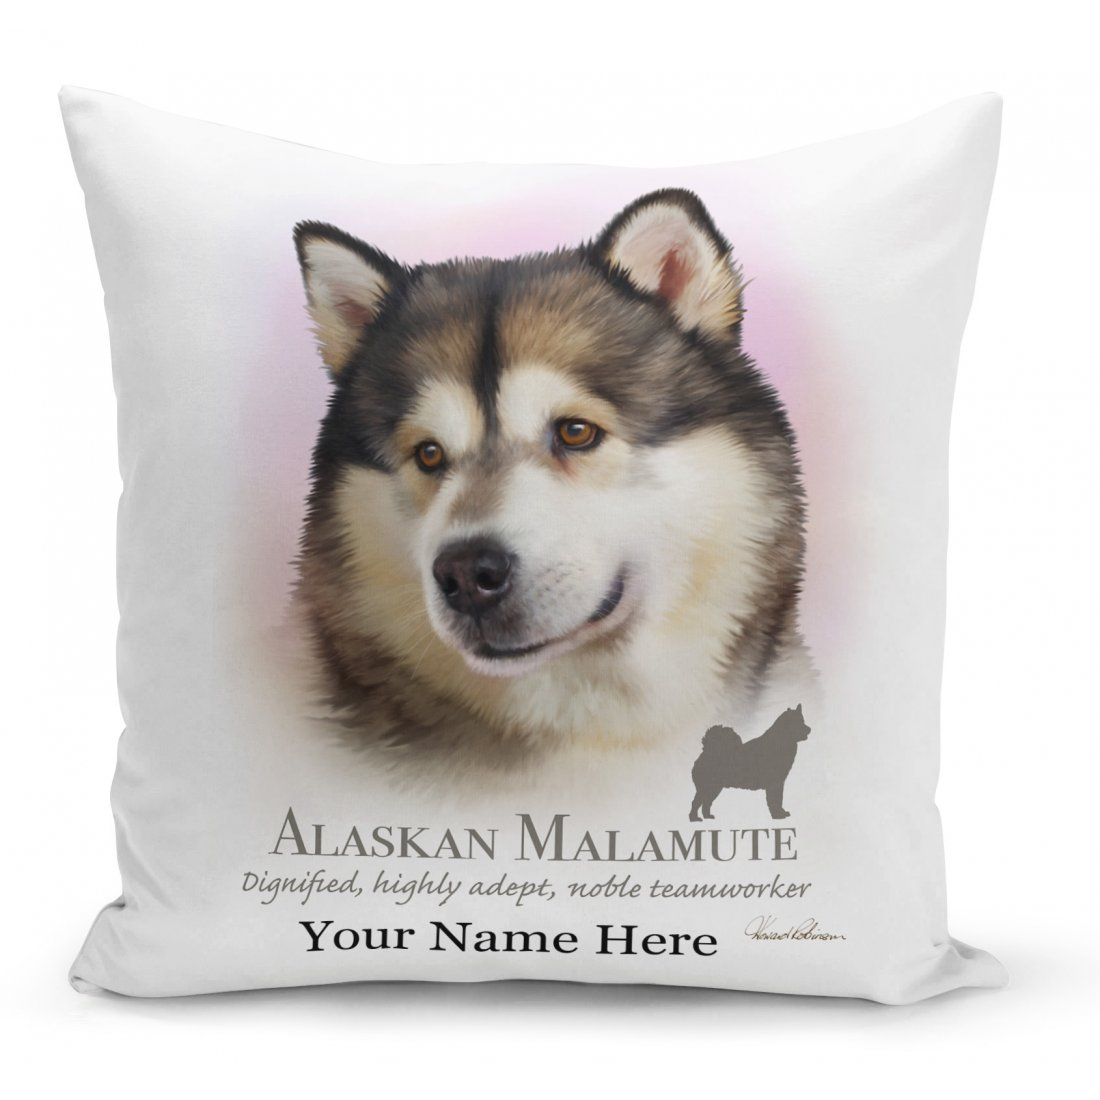 Customisable Alaskan Malamute Dog Cushion